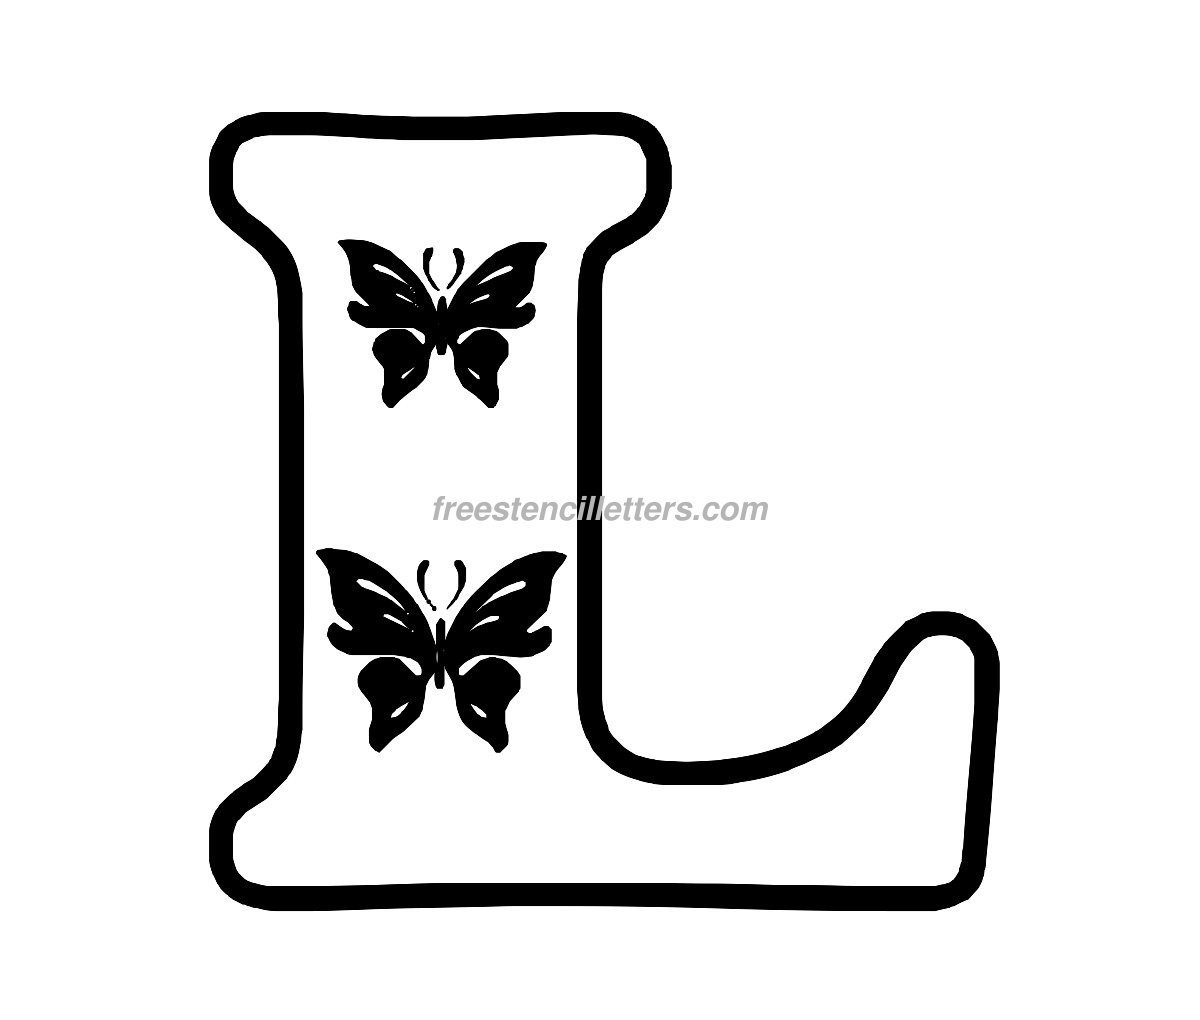 Worksheets Large Letters To Print And Cut Out 8 best images of free printable cut out letters print c letter stencil l stencil